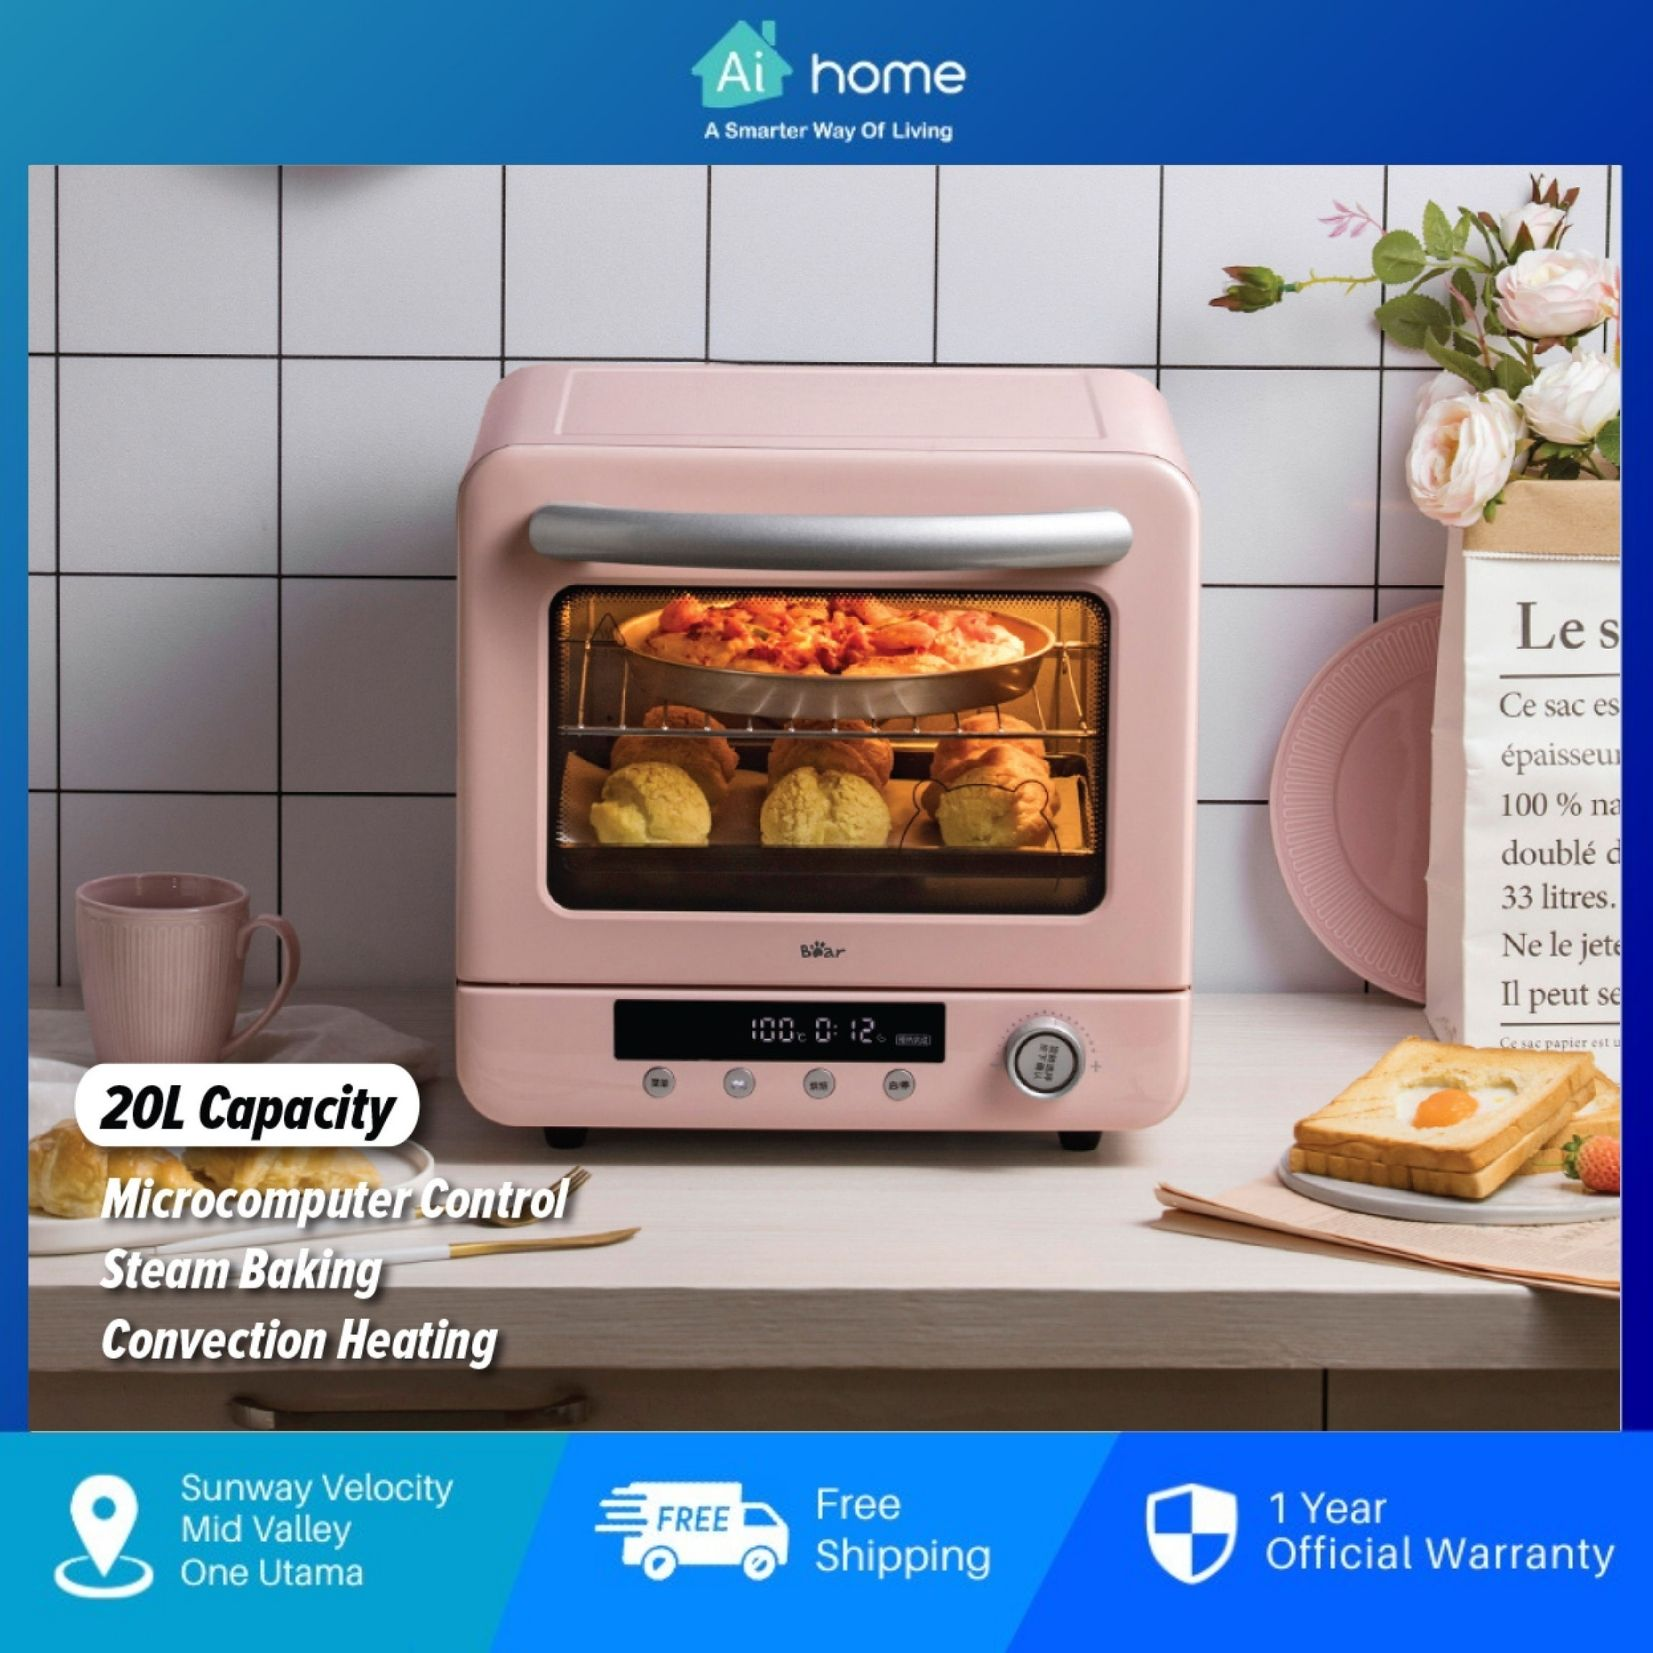 Bear Air fryer Steam Oven 20L BSO-P200L - 1300W | Cyclone Thermal | Water Steam Baking | Microcomputer Control [Aihome]